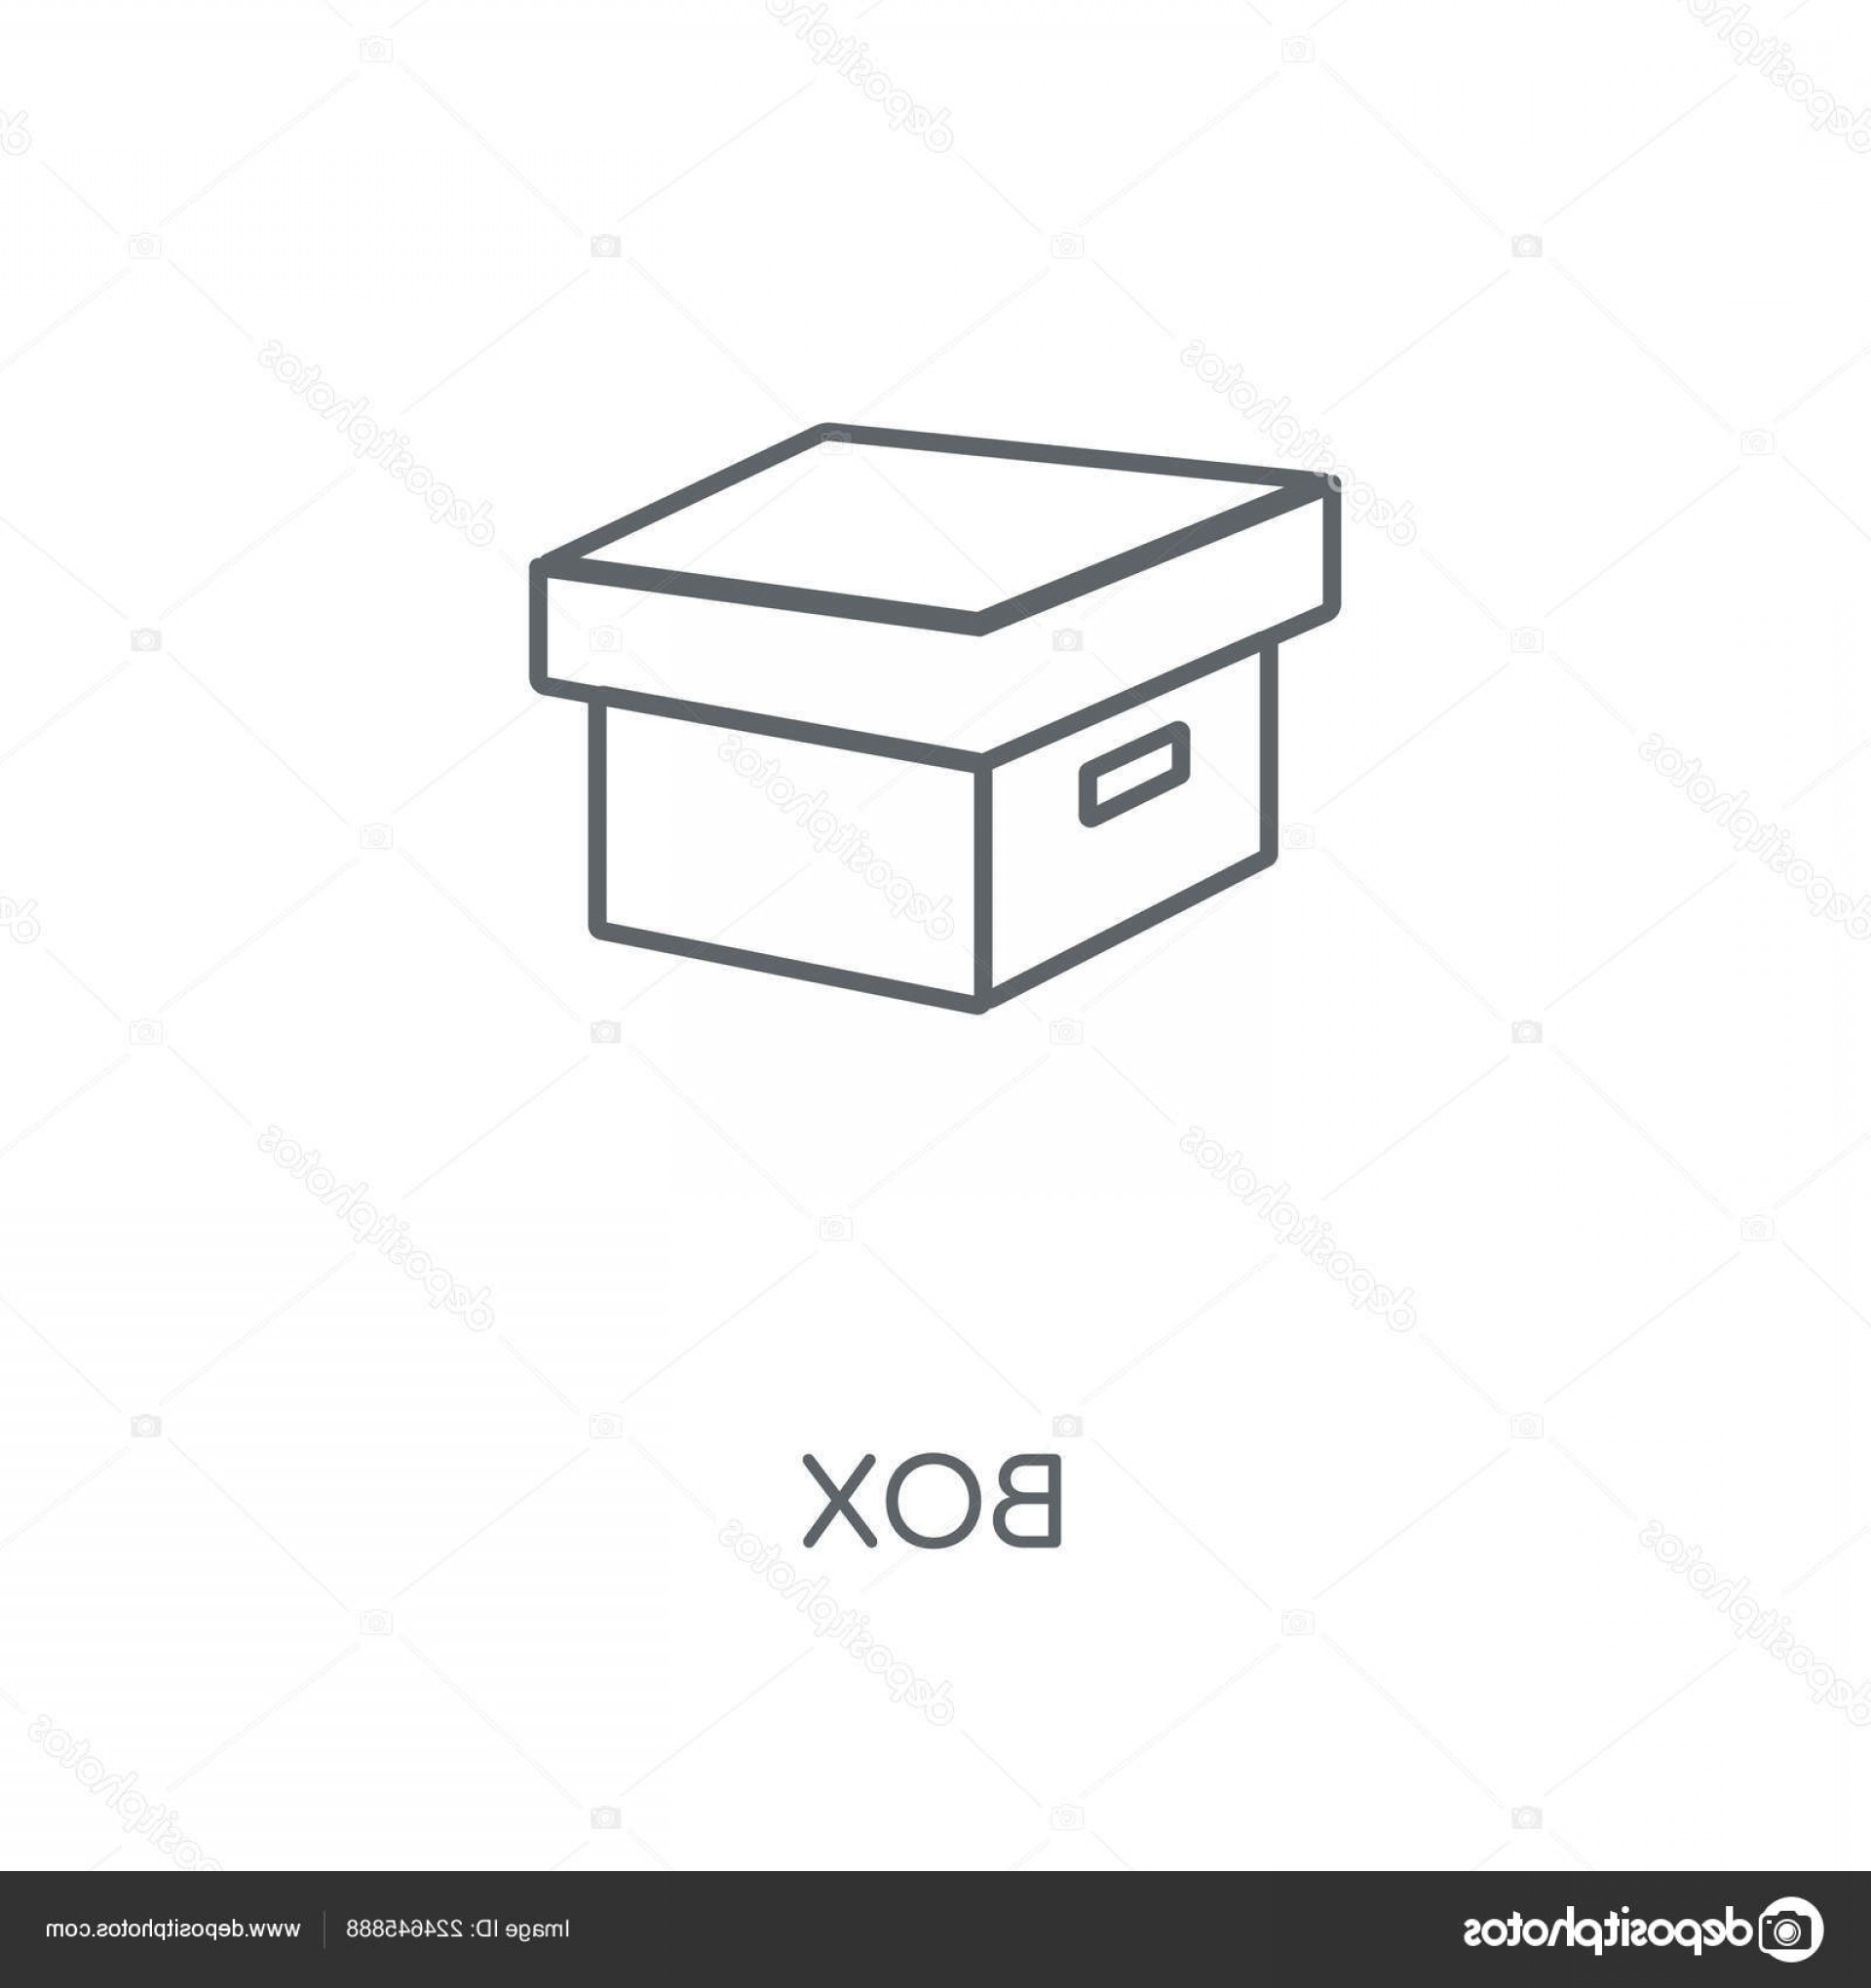 Shed PNG Vector: Stock Illustration Box Linear Icon Box Concept